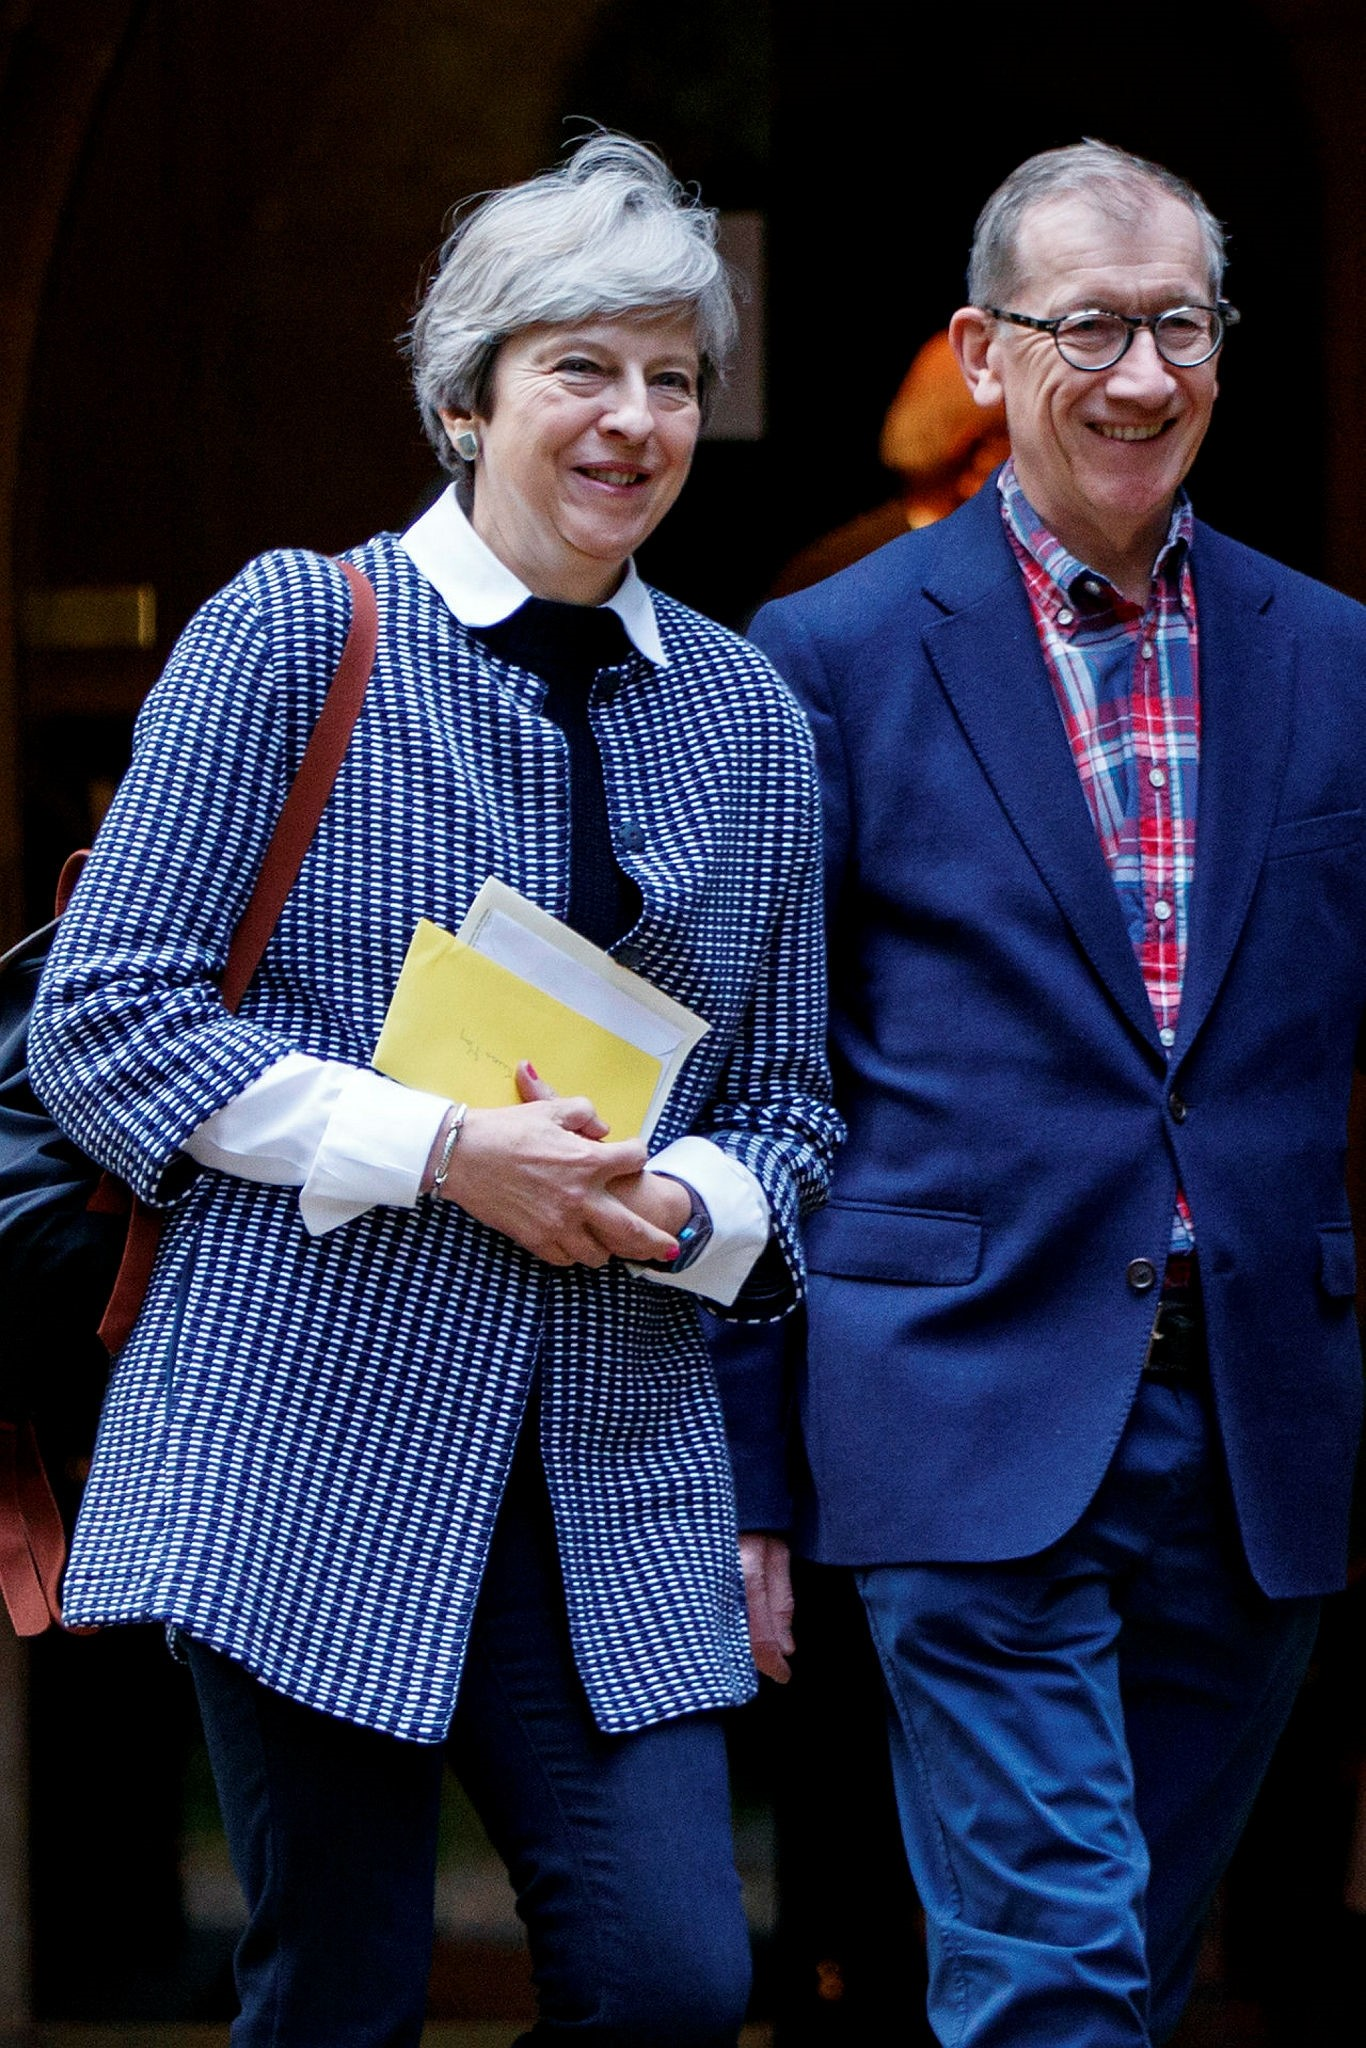 British Prime Minister Theresa May (L) and her husband Philip May leave after attending the Sunday morning service at a church in her Maidenhead constituency in Berkshire, Oct. 8.